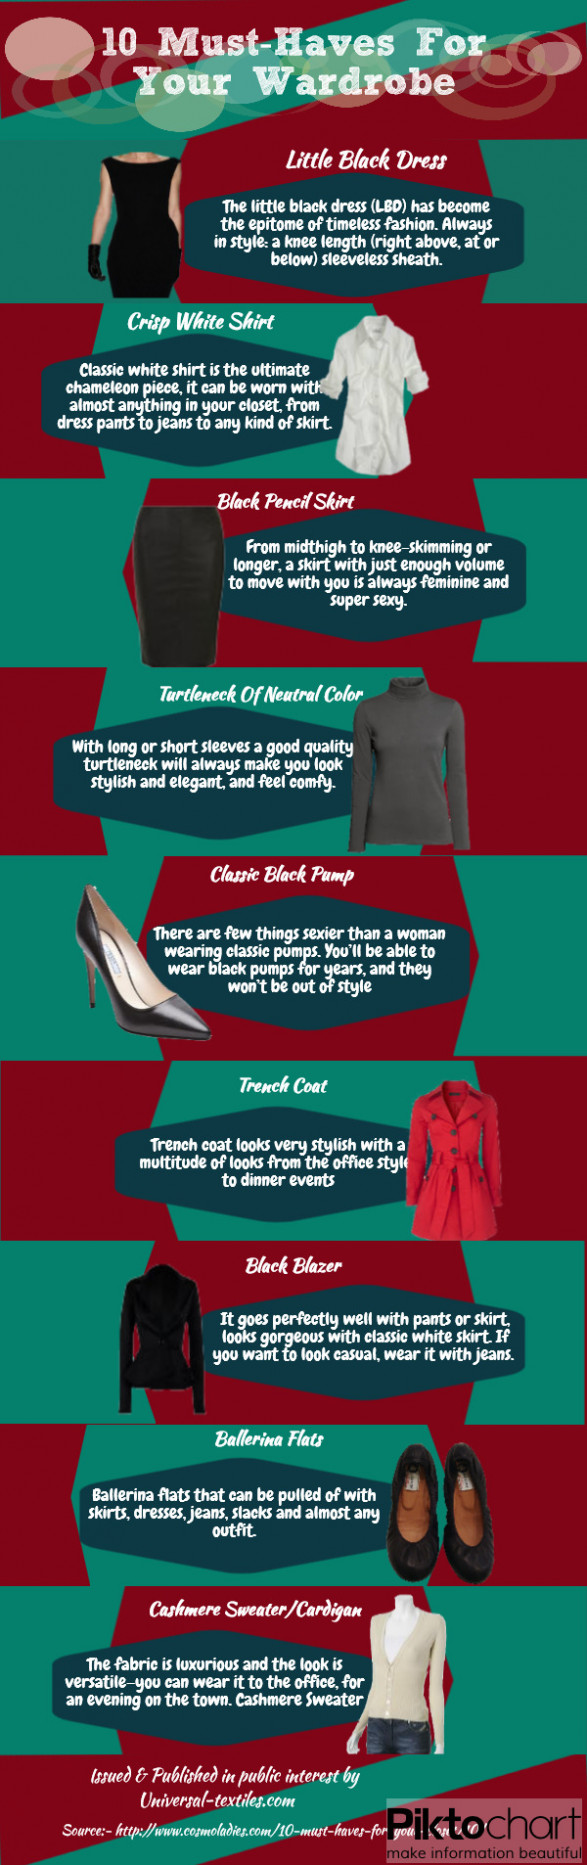 10 Must Have For Your Wardrobe